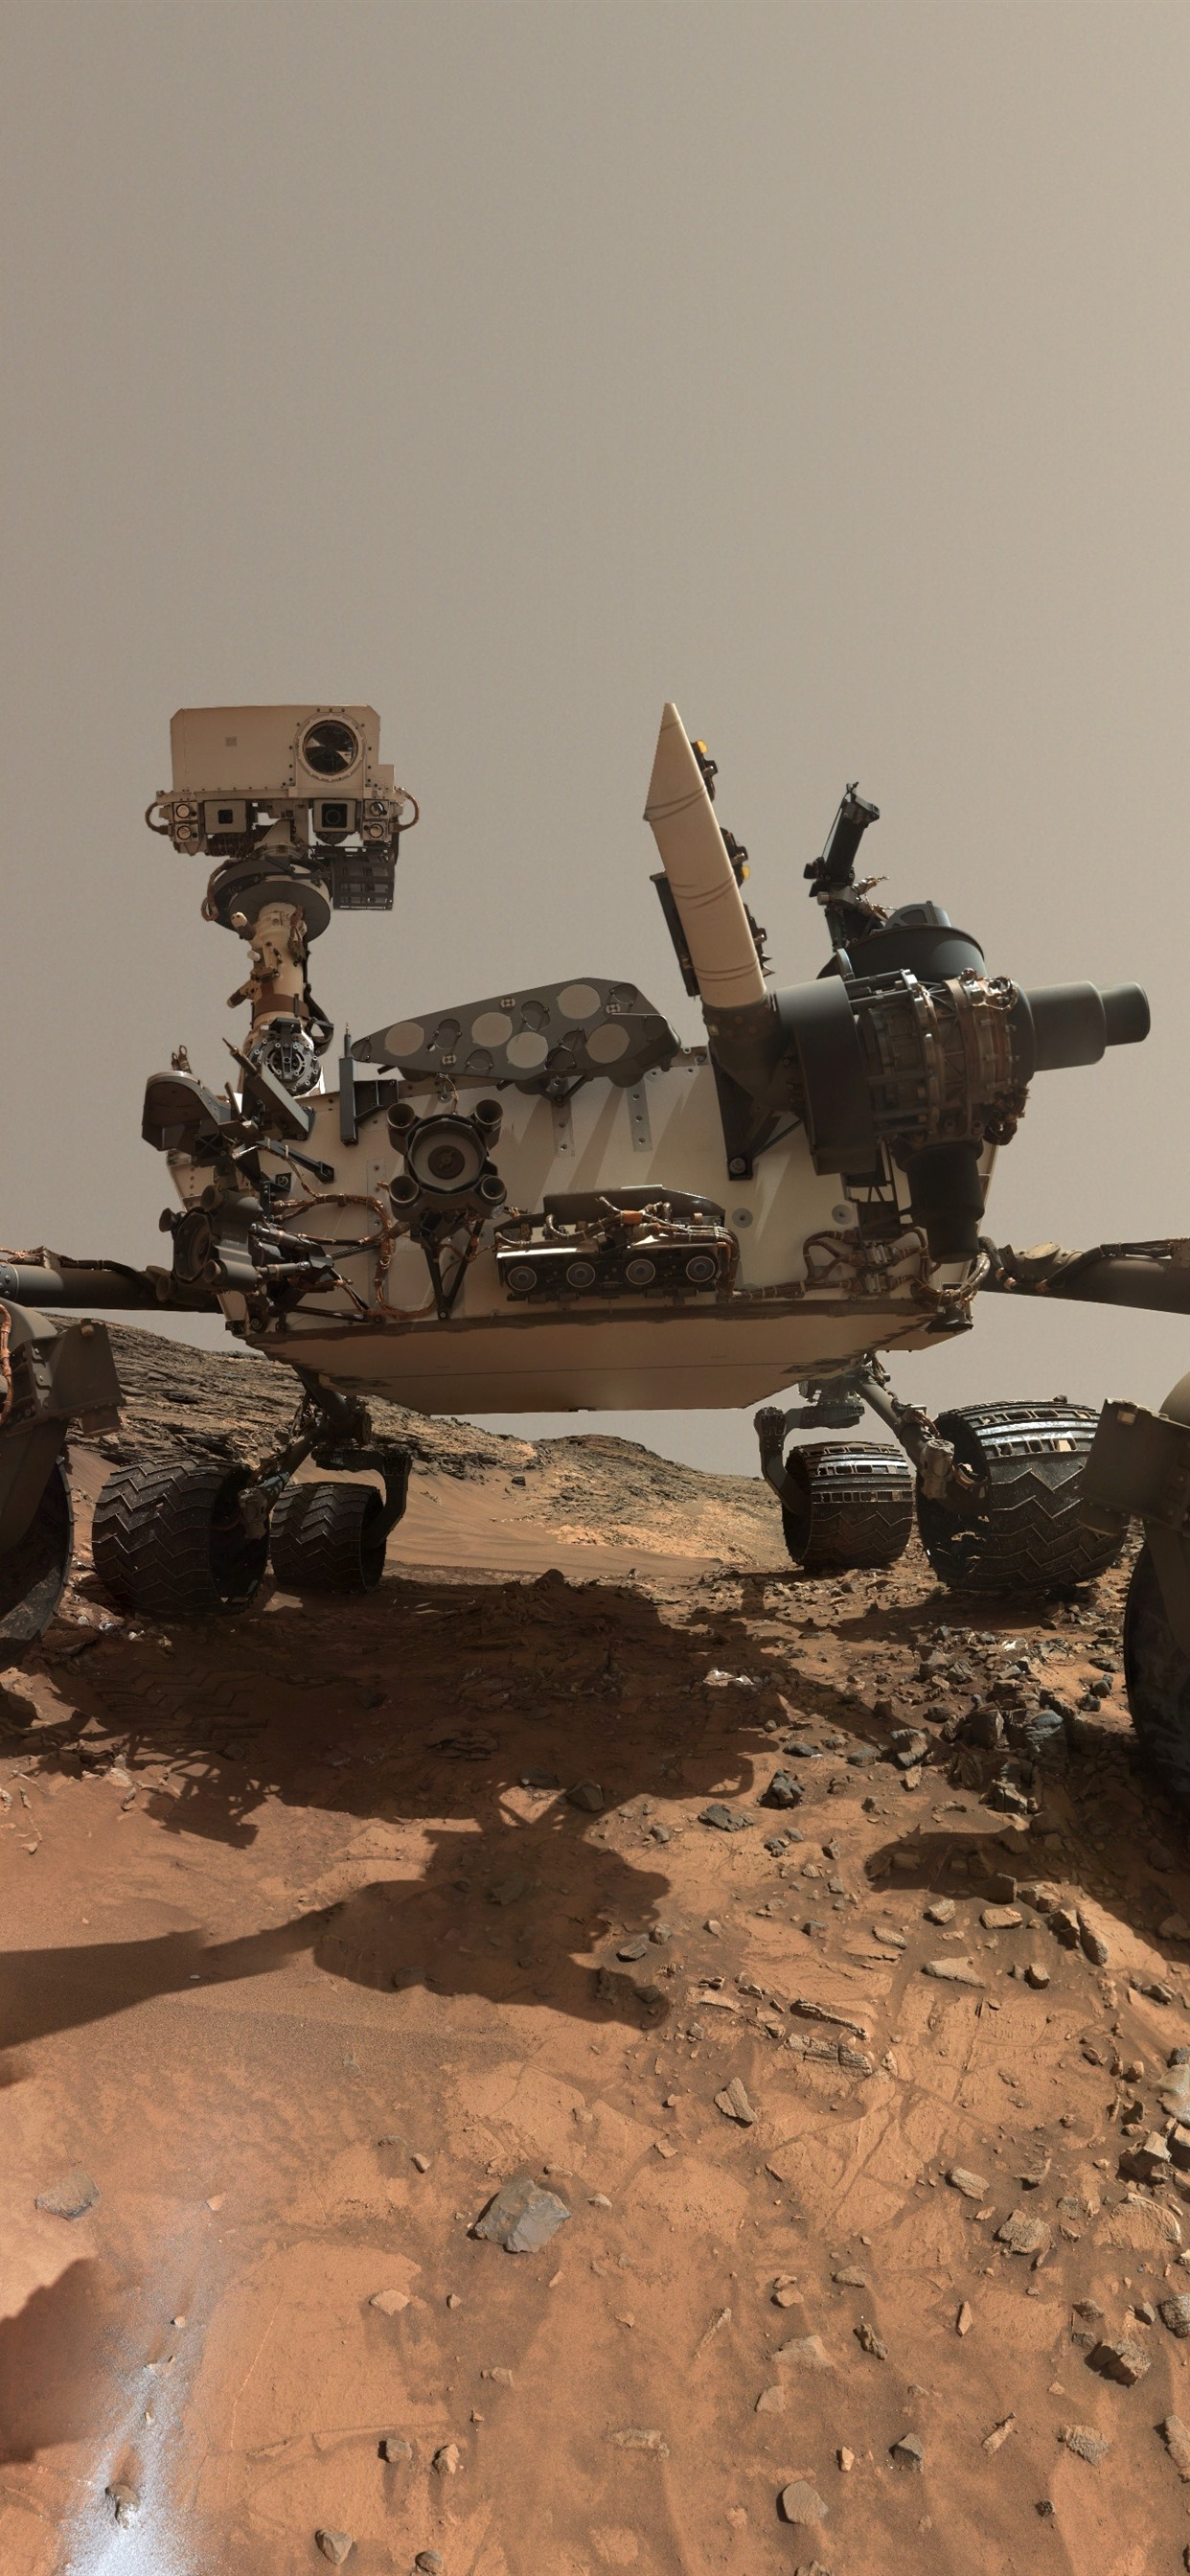 Mars Rover Curiosity Planet 1242x2688 Iphone 11 Pro Xs Max Wallpaper Background Picture Image